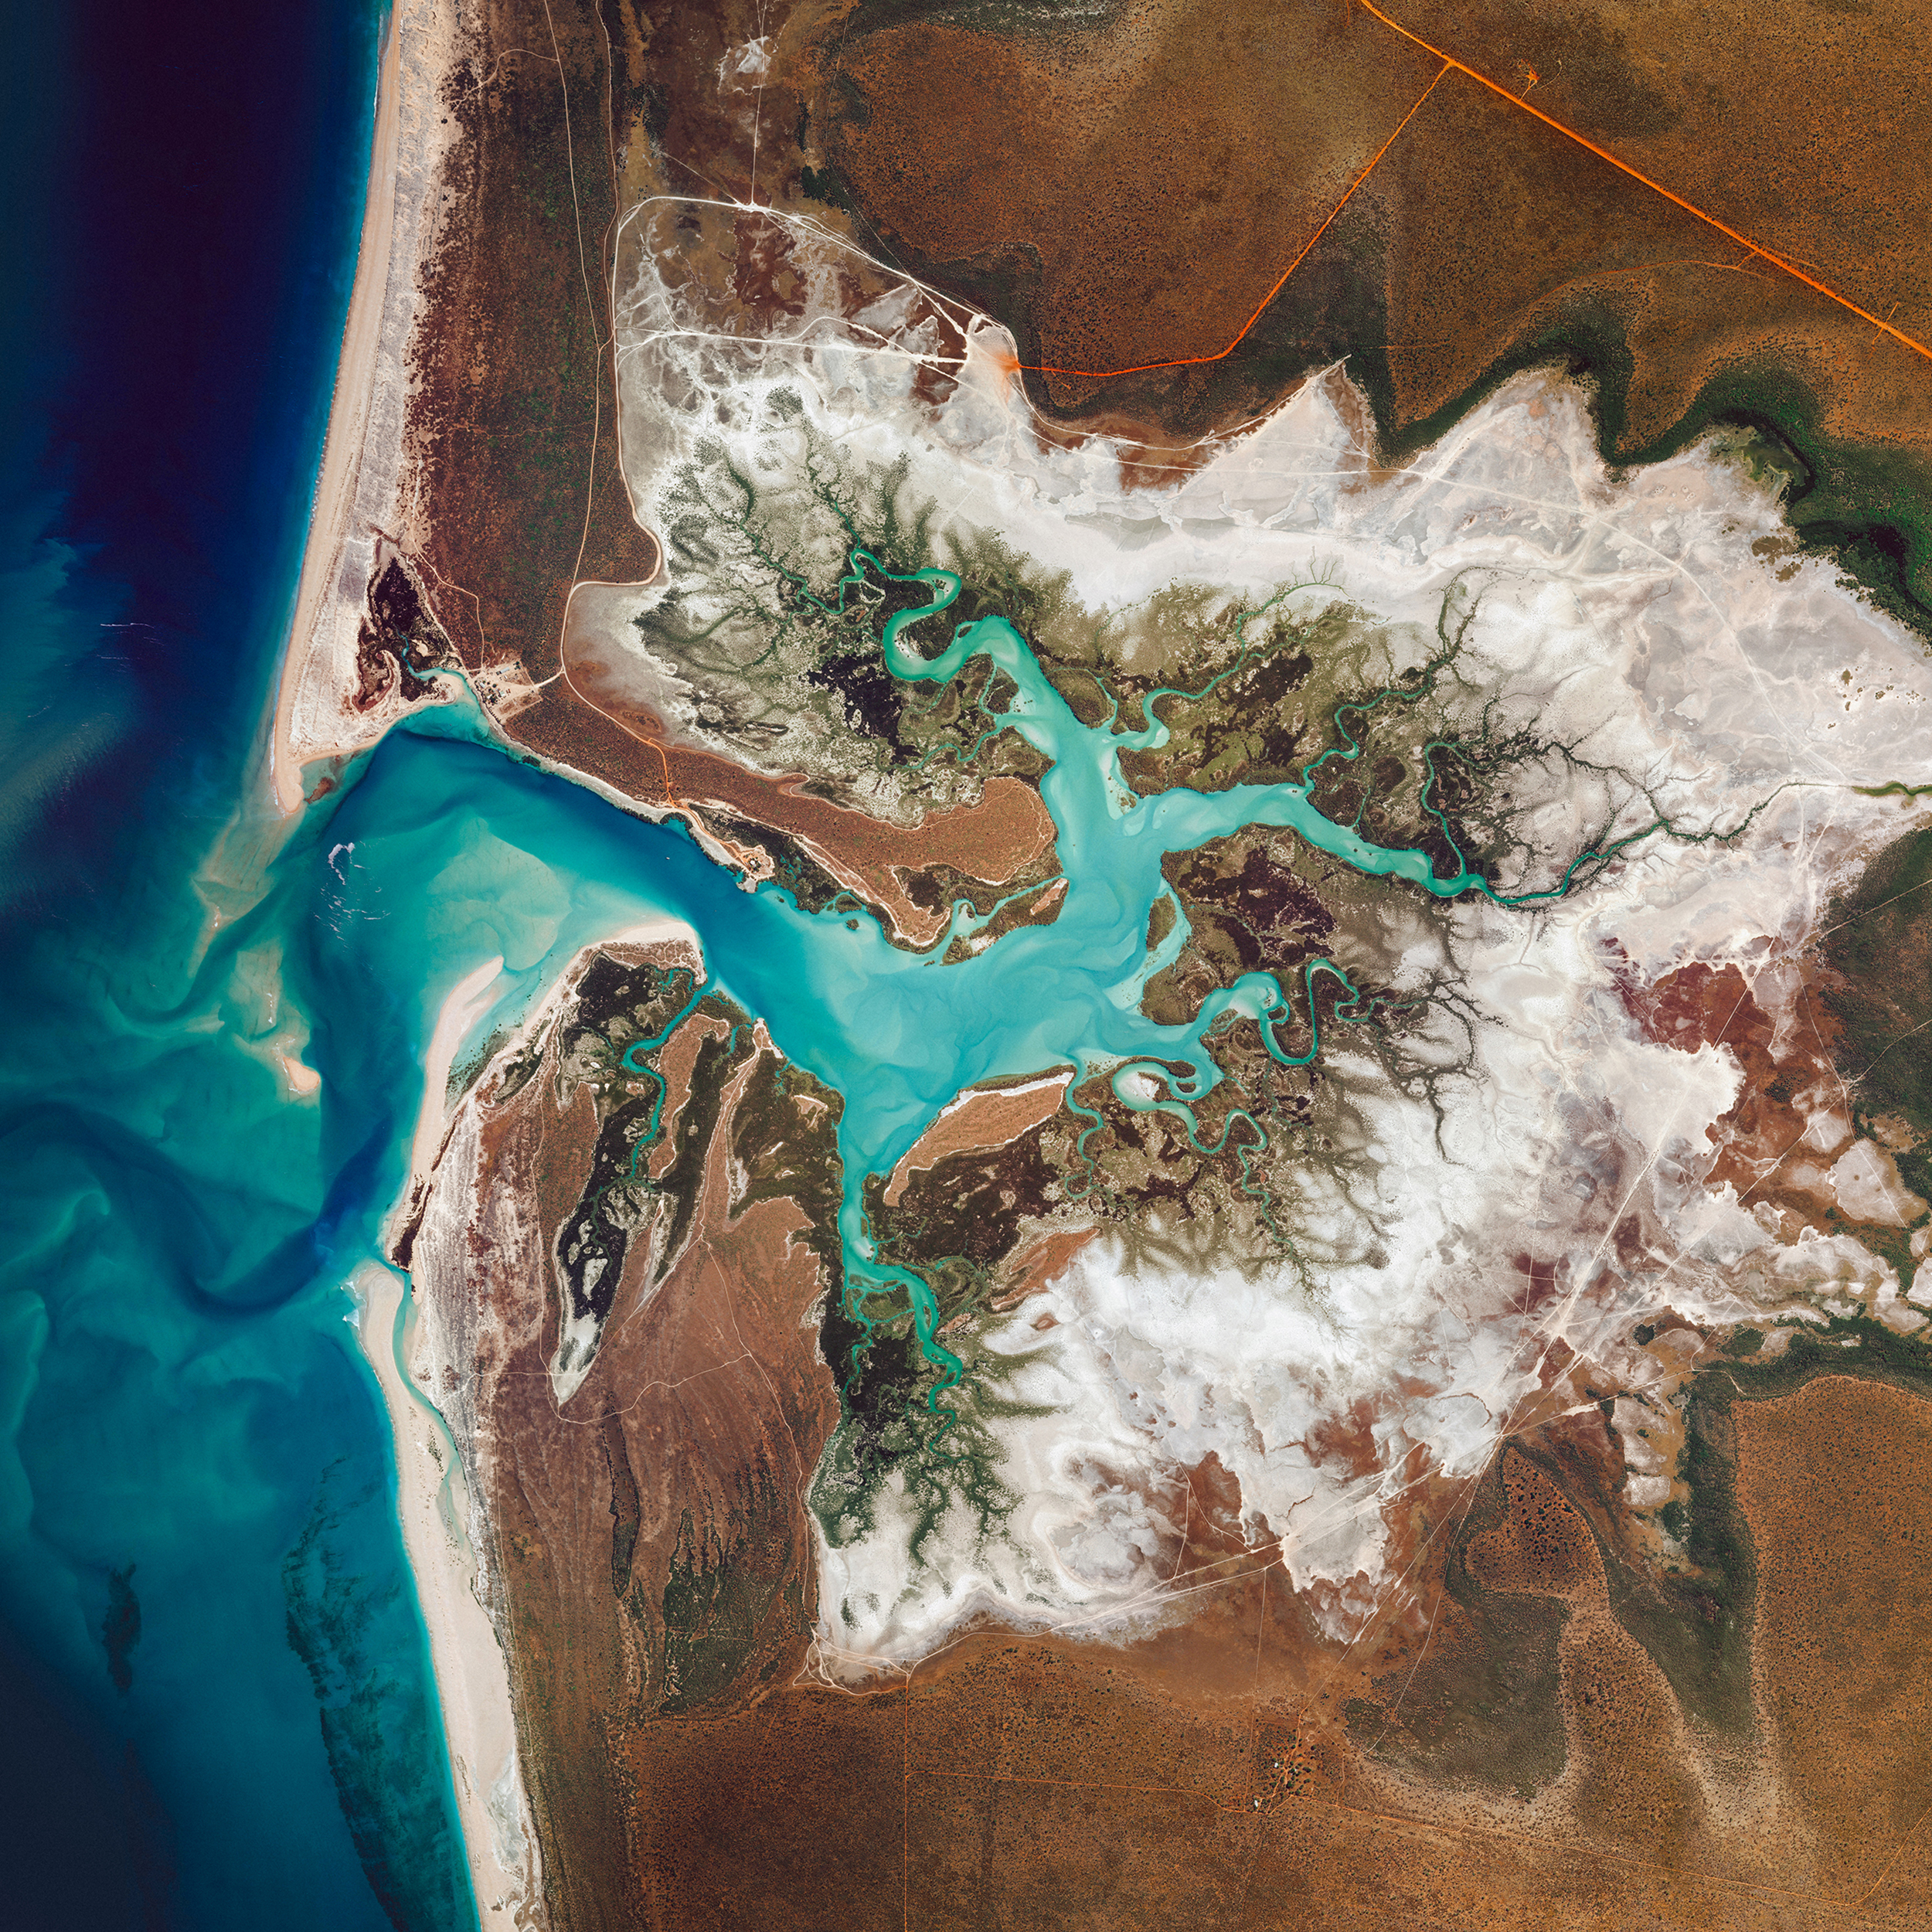 Willie Creek is a protected tidal estuary roughly 10.5 miles (17 km) north of Broome, Western Australia. The creek's calm, nutrient-rich waters make it an ideal habitat for the Pinctada maxima oyster, which produces world-renowned pearls.  -17.764682°, 122.217335°  Source imagery: Maxar Technologies